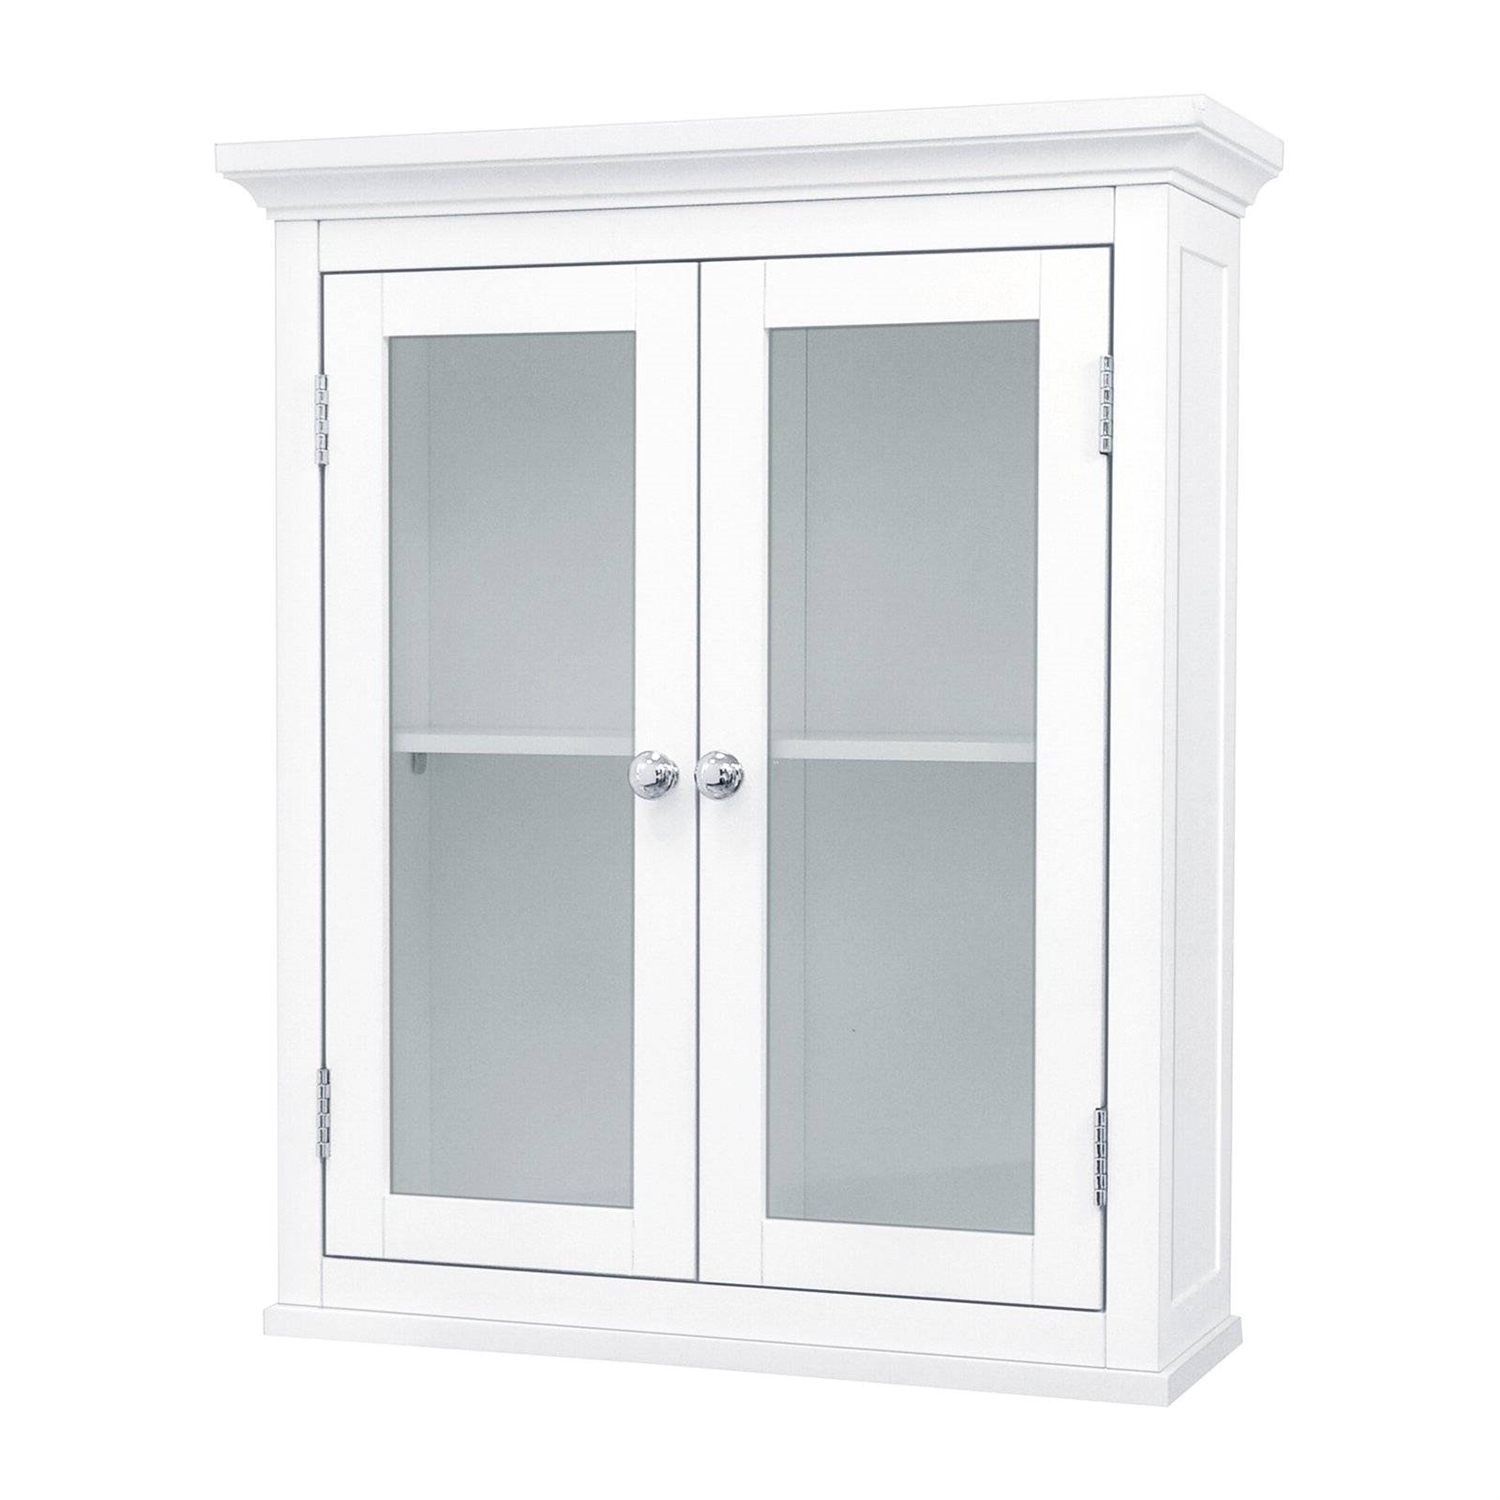 Classic 2-Door Bathroom Wall Cabinet in White Finish